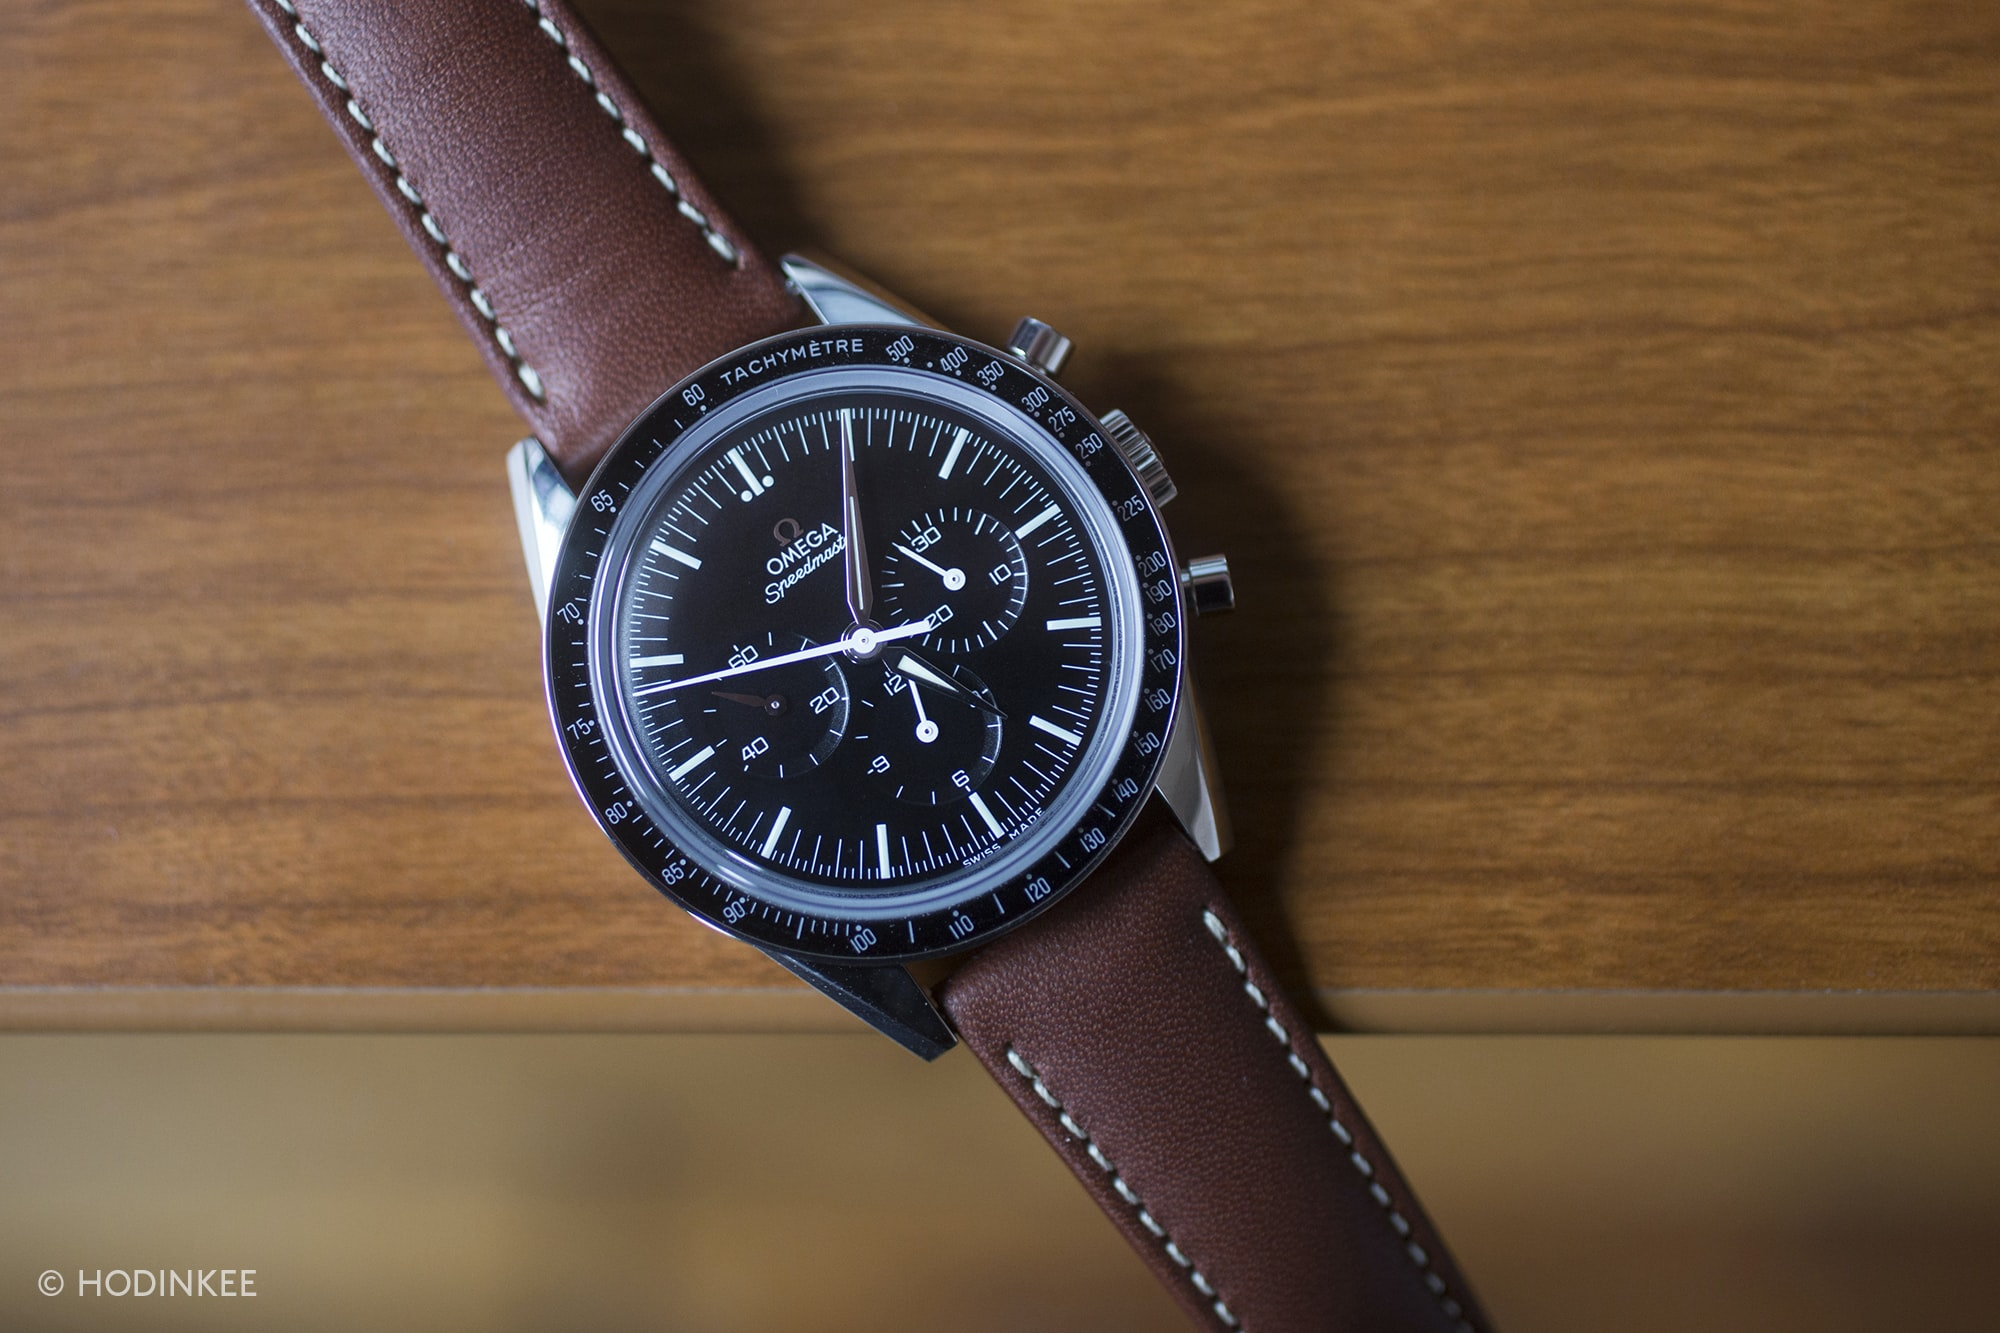 Omega Speedmaster First Omega In Space Review A Week On The Wrist: The Omega Speedmaster 'First Omega In Space' A Week On The Wrist: The Omega Speedmaster 'First Omega In Space' AAA Omega FOIS 2